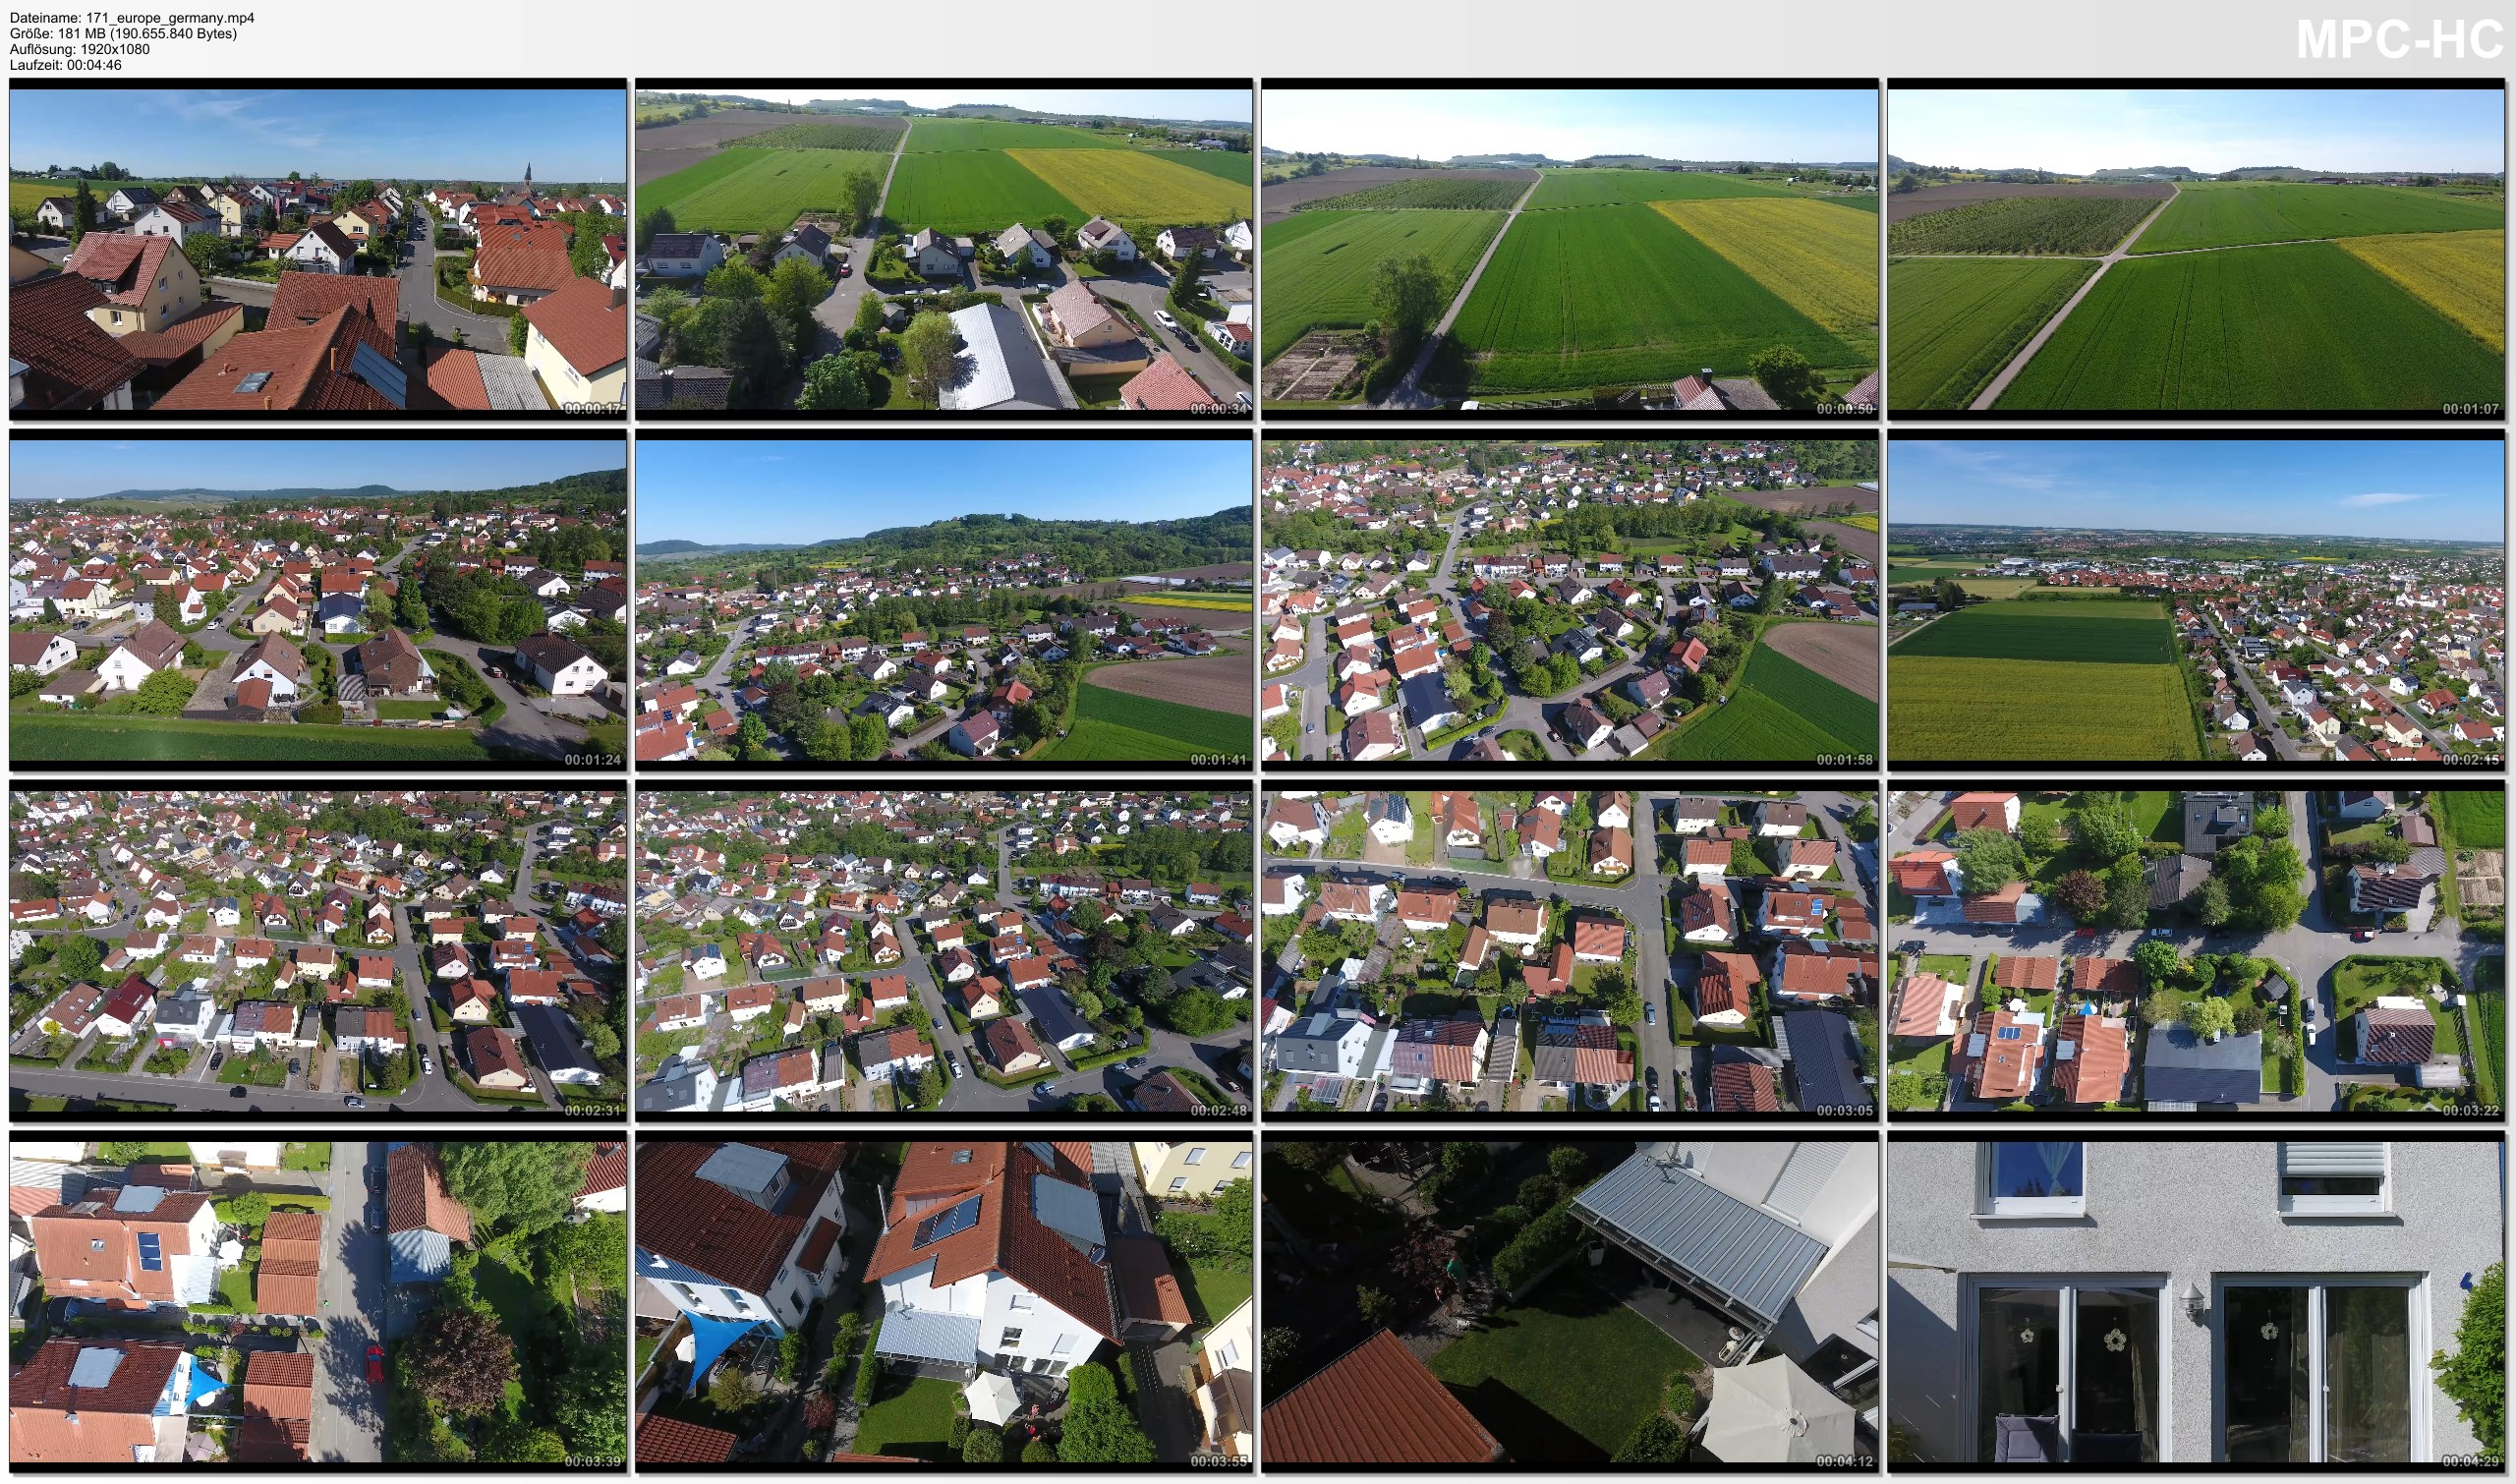 Drone Pictures from Video 【4K】Drone RAW Footage | GERMANY 2019 ..:: Pfedelbach | UltraHD Stock Video